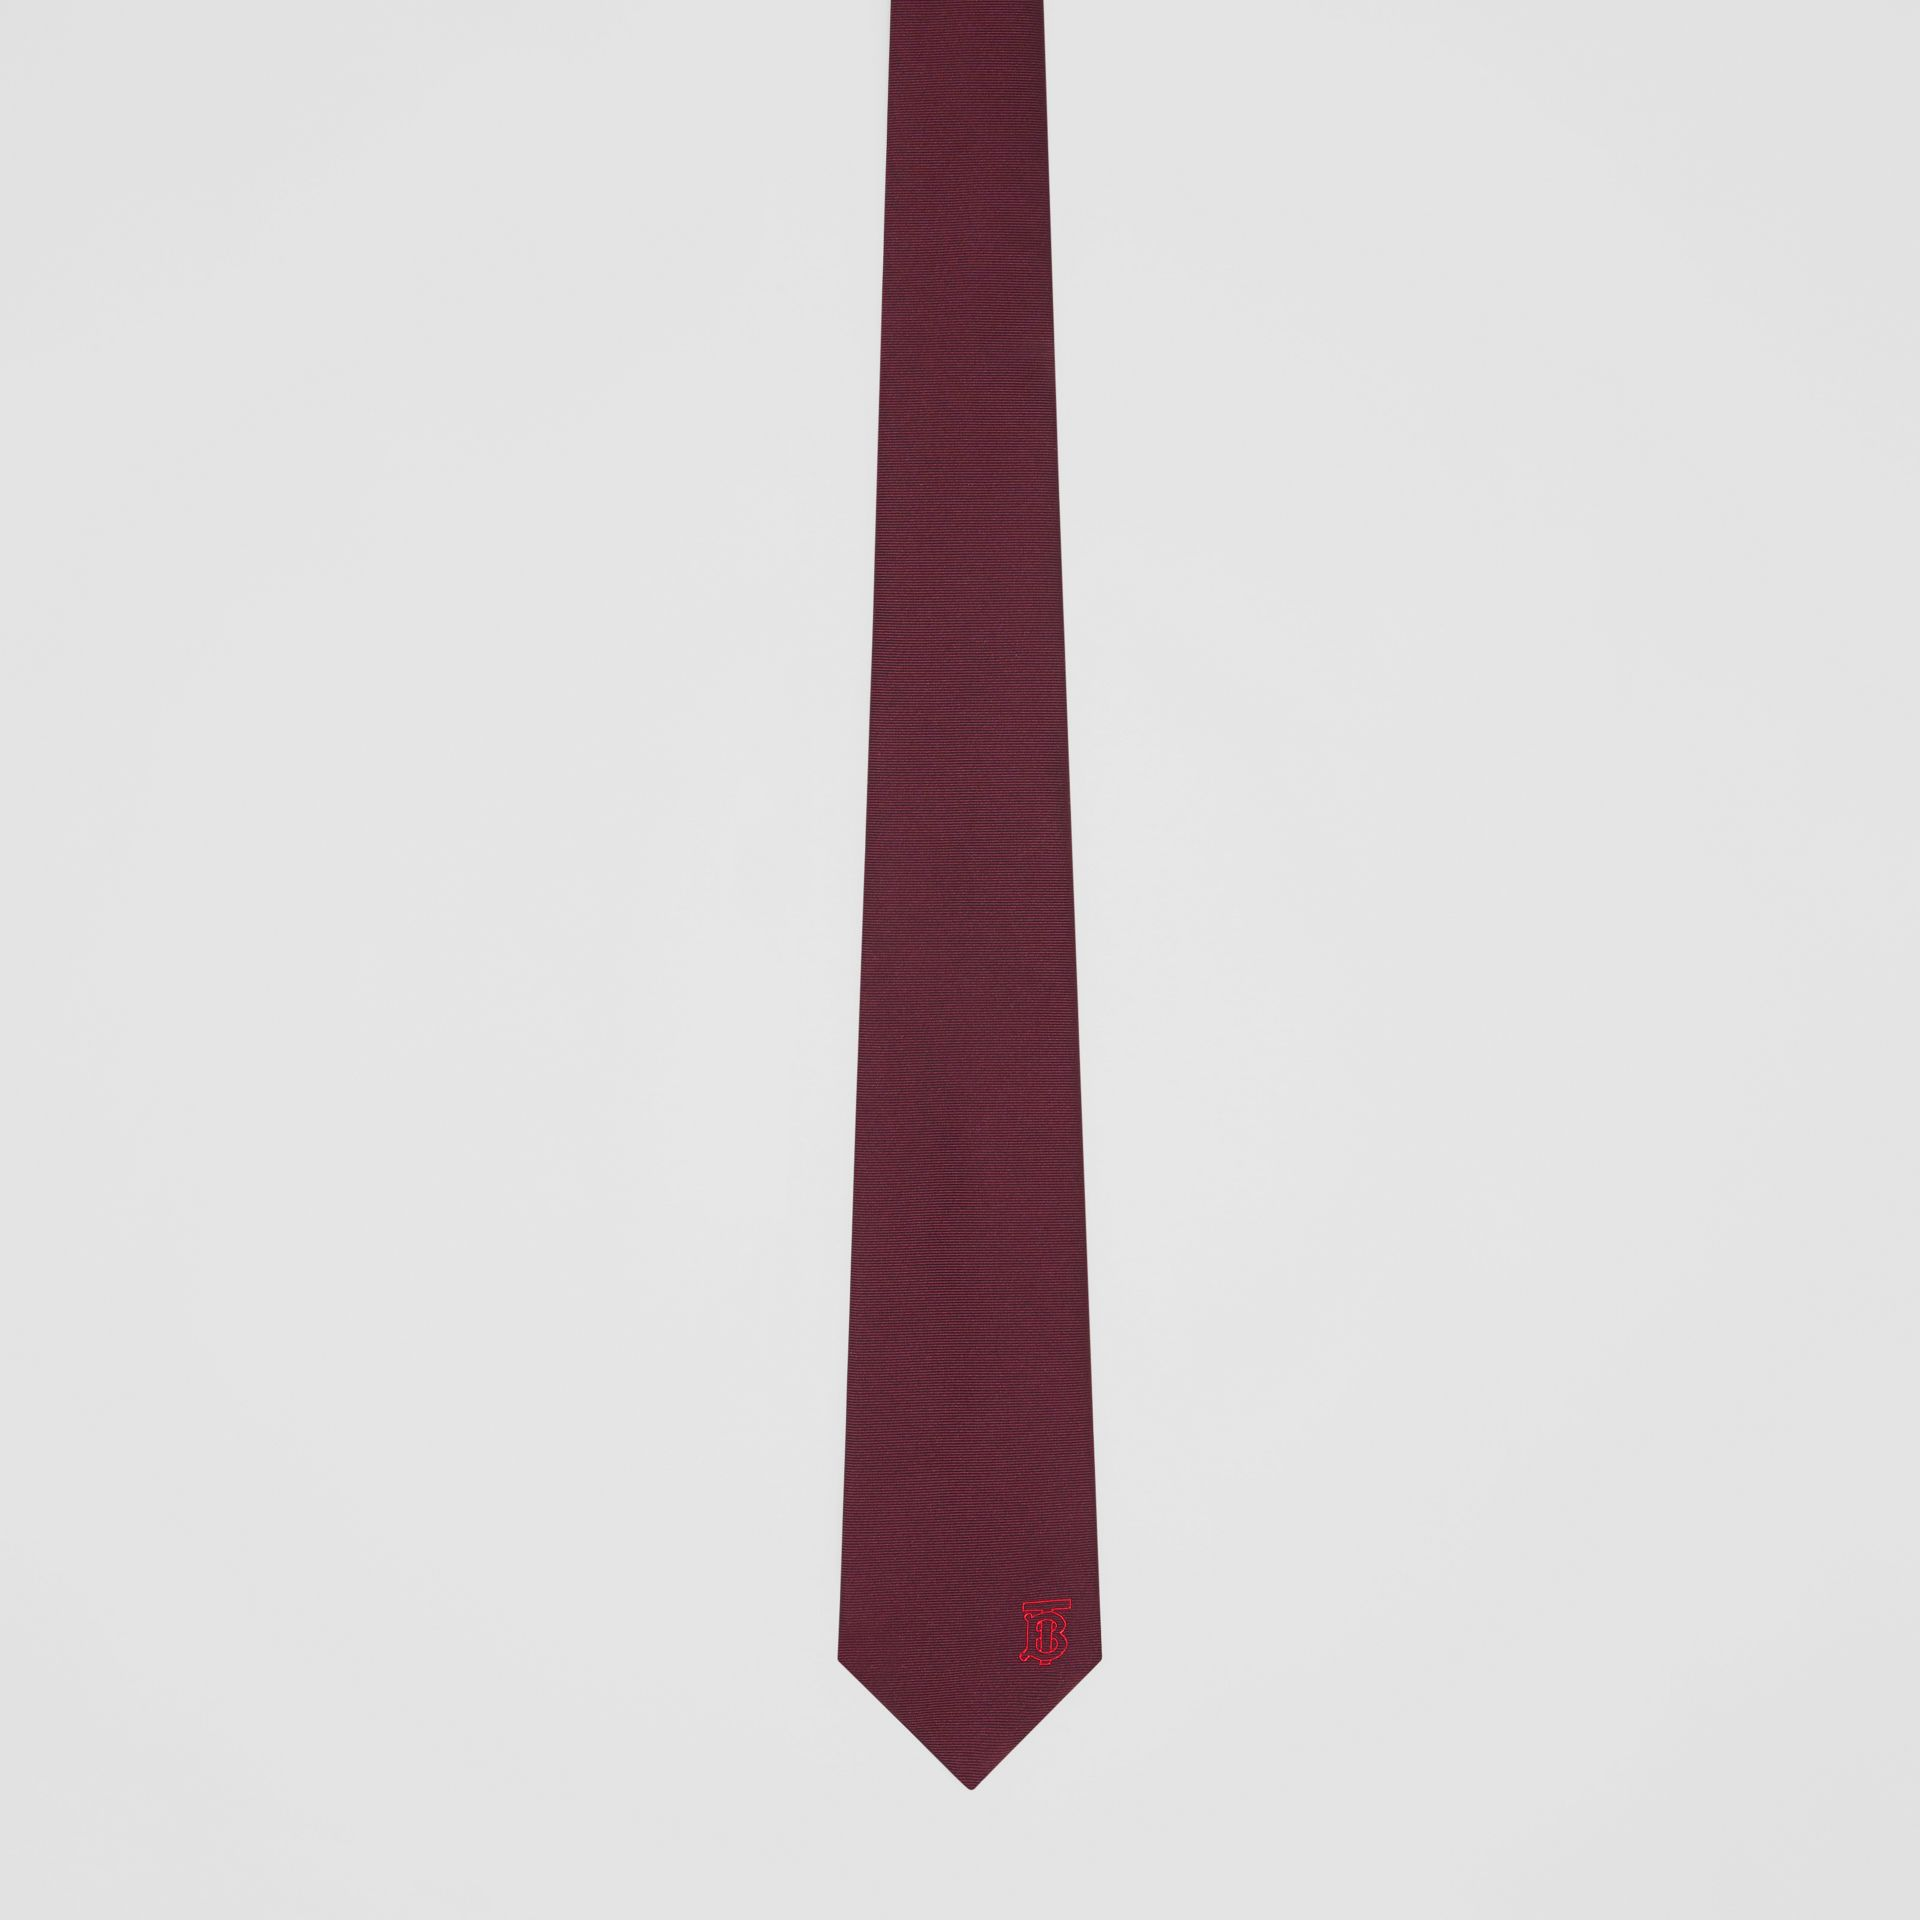 Classic Cut Monogram Motif Silk Tie in Deep Claret - Men | Burberry Canada - gallery image 3